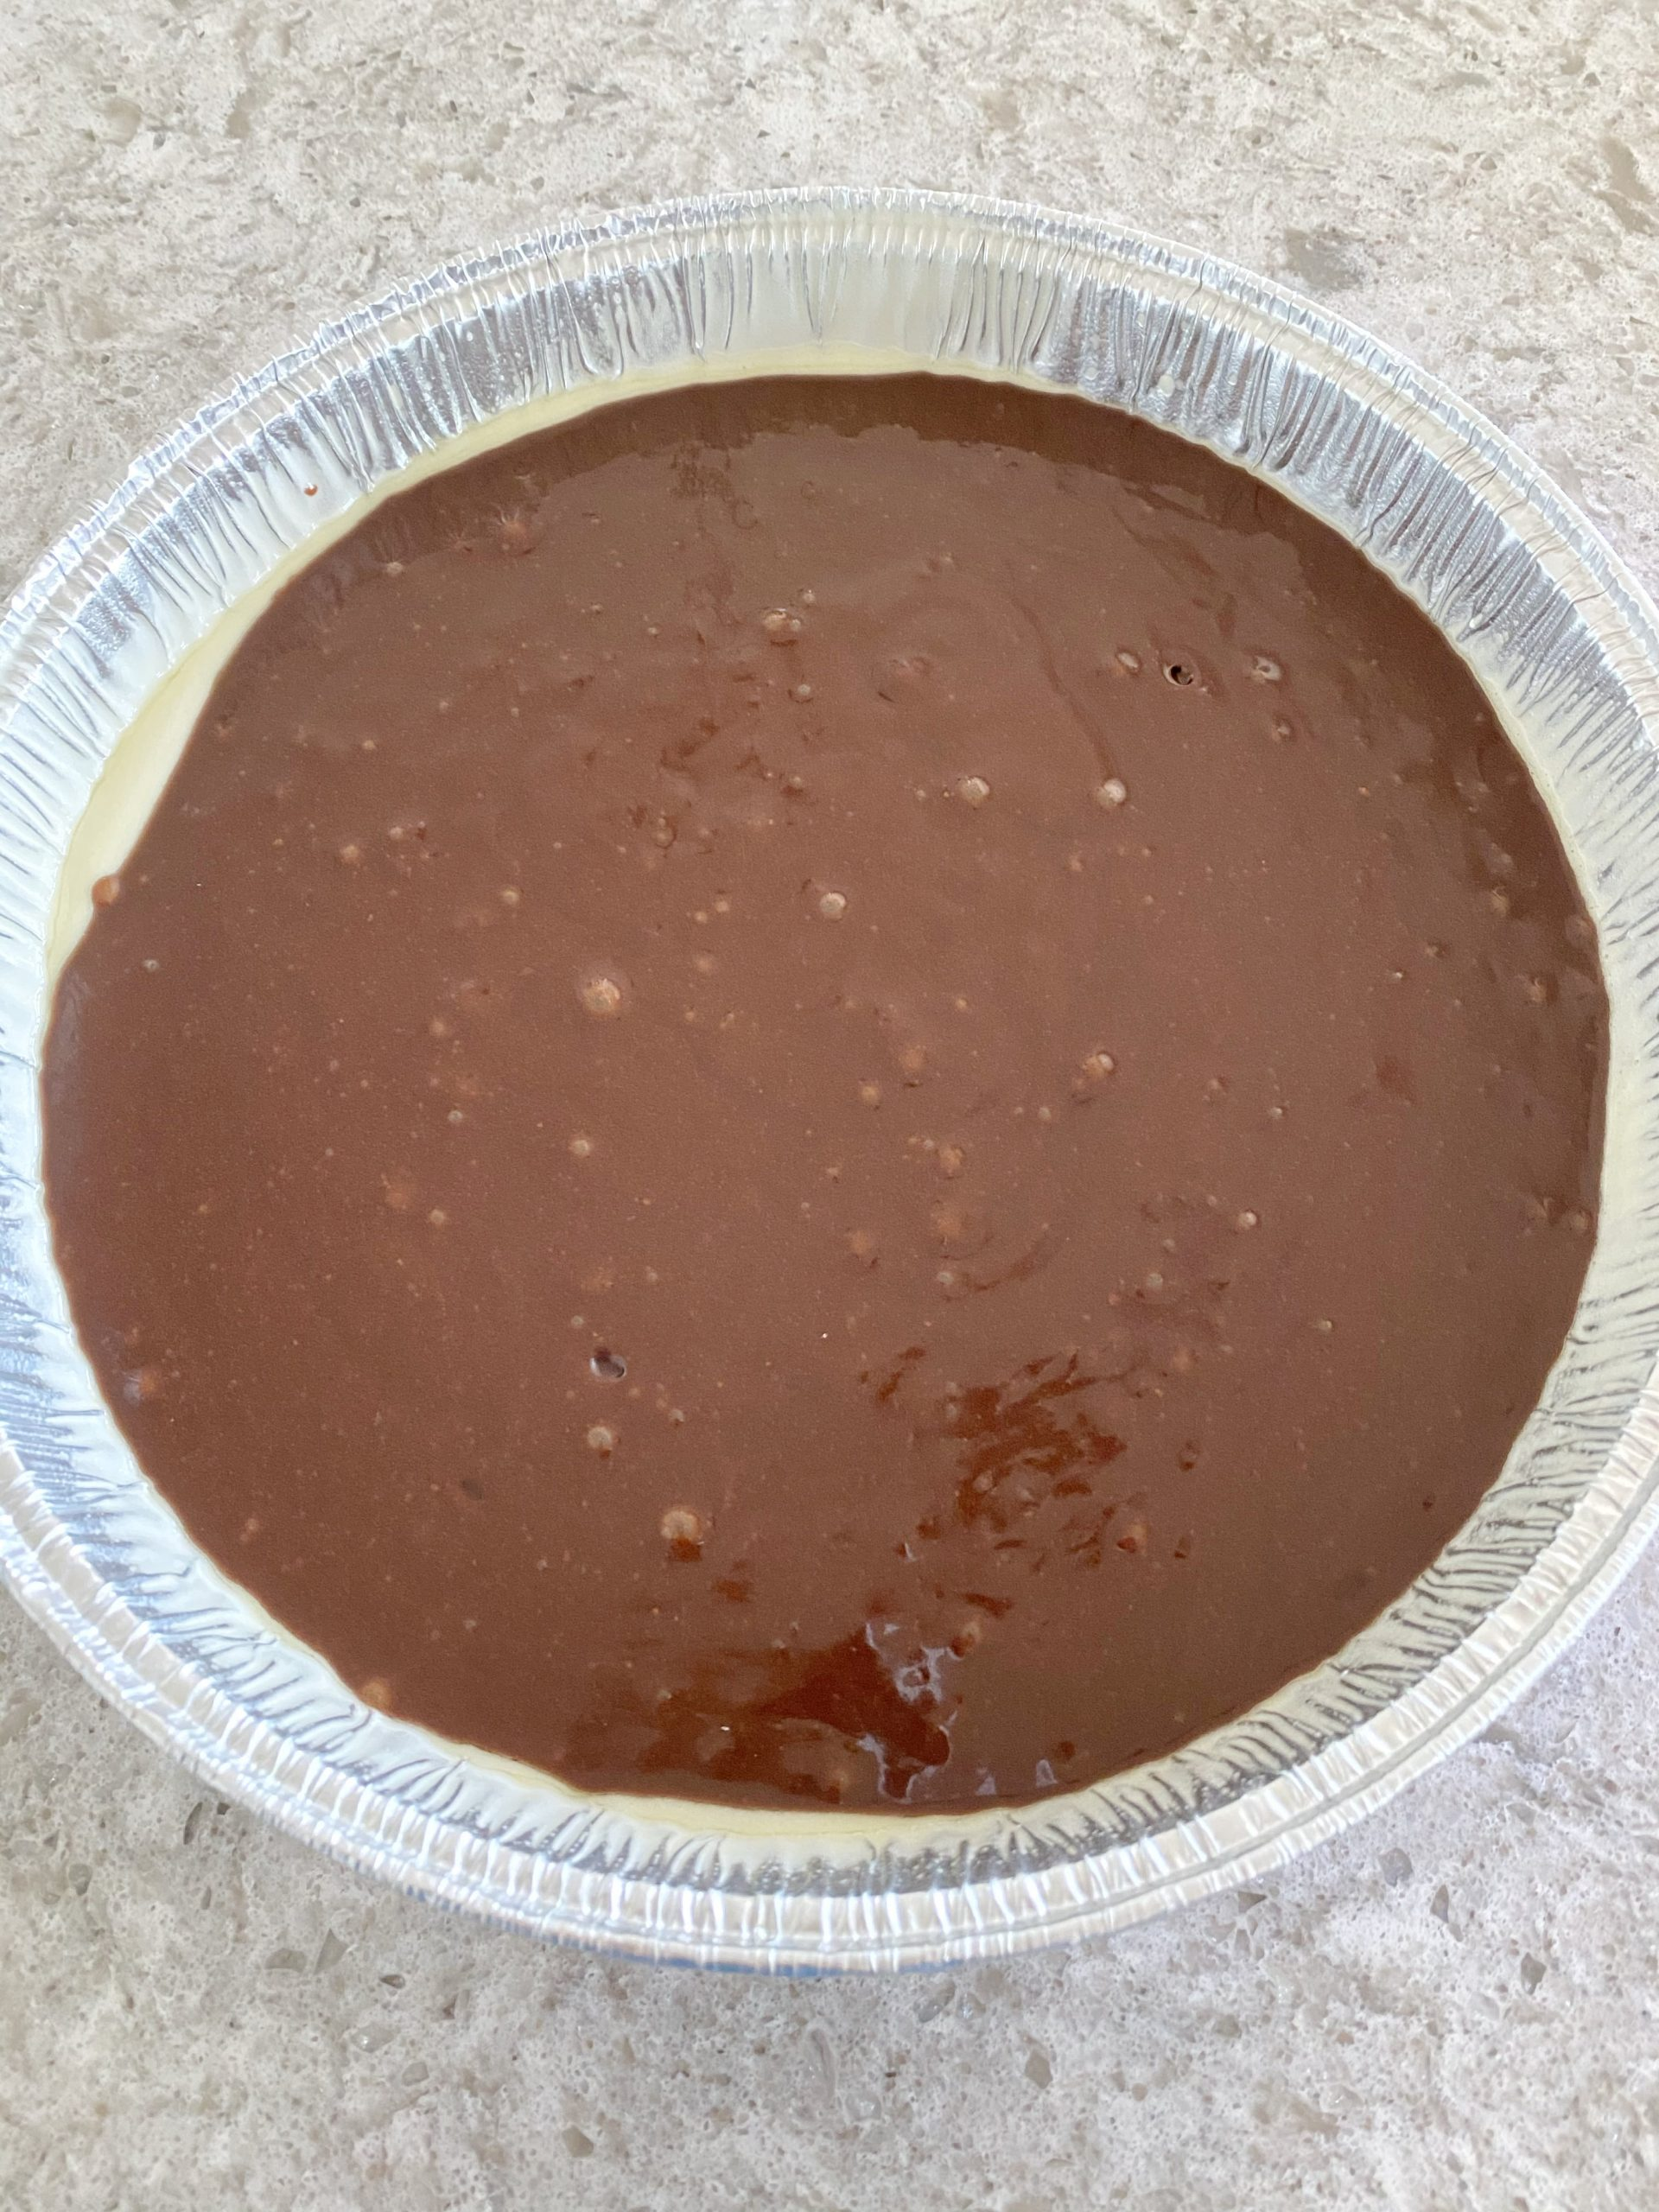 brownie batter in cake pan